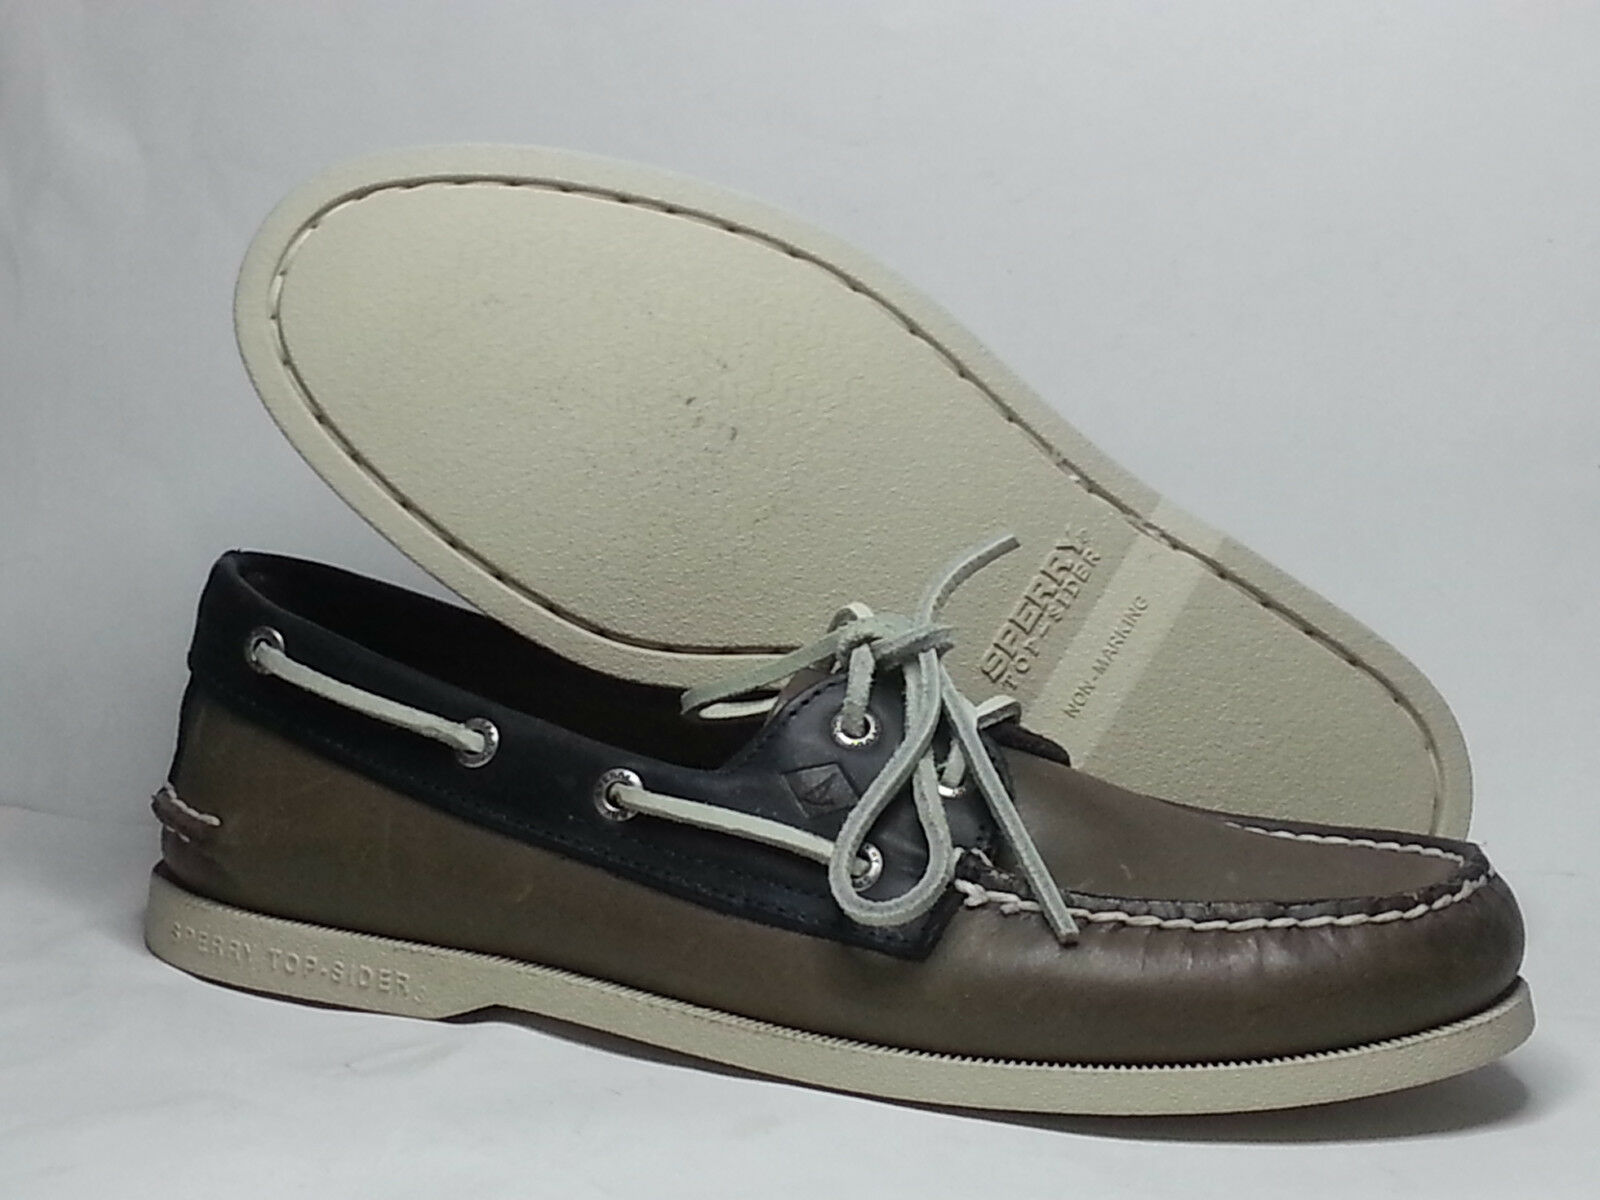 Scarpe casual da uomo  Sperry Top-Sider uomo Size 9 Boat Shoes Leather Gray Blue Leather Lining